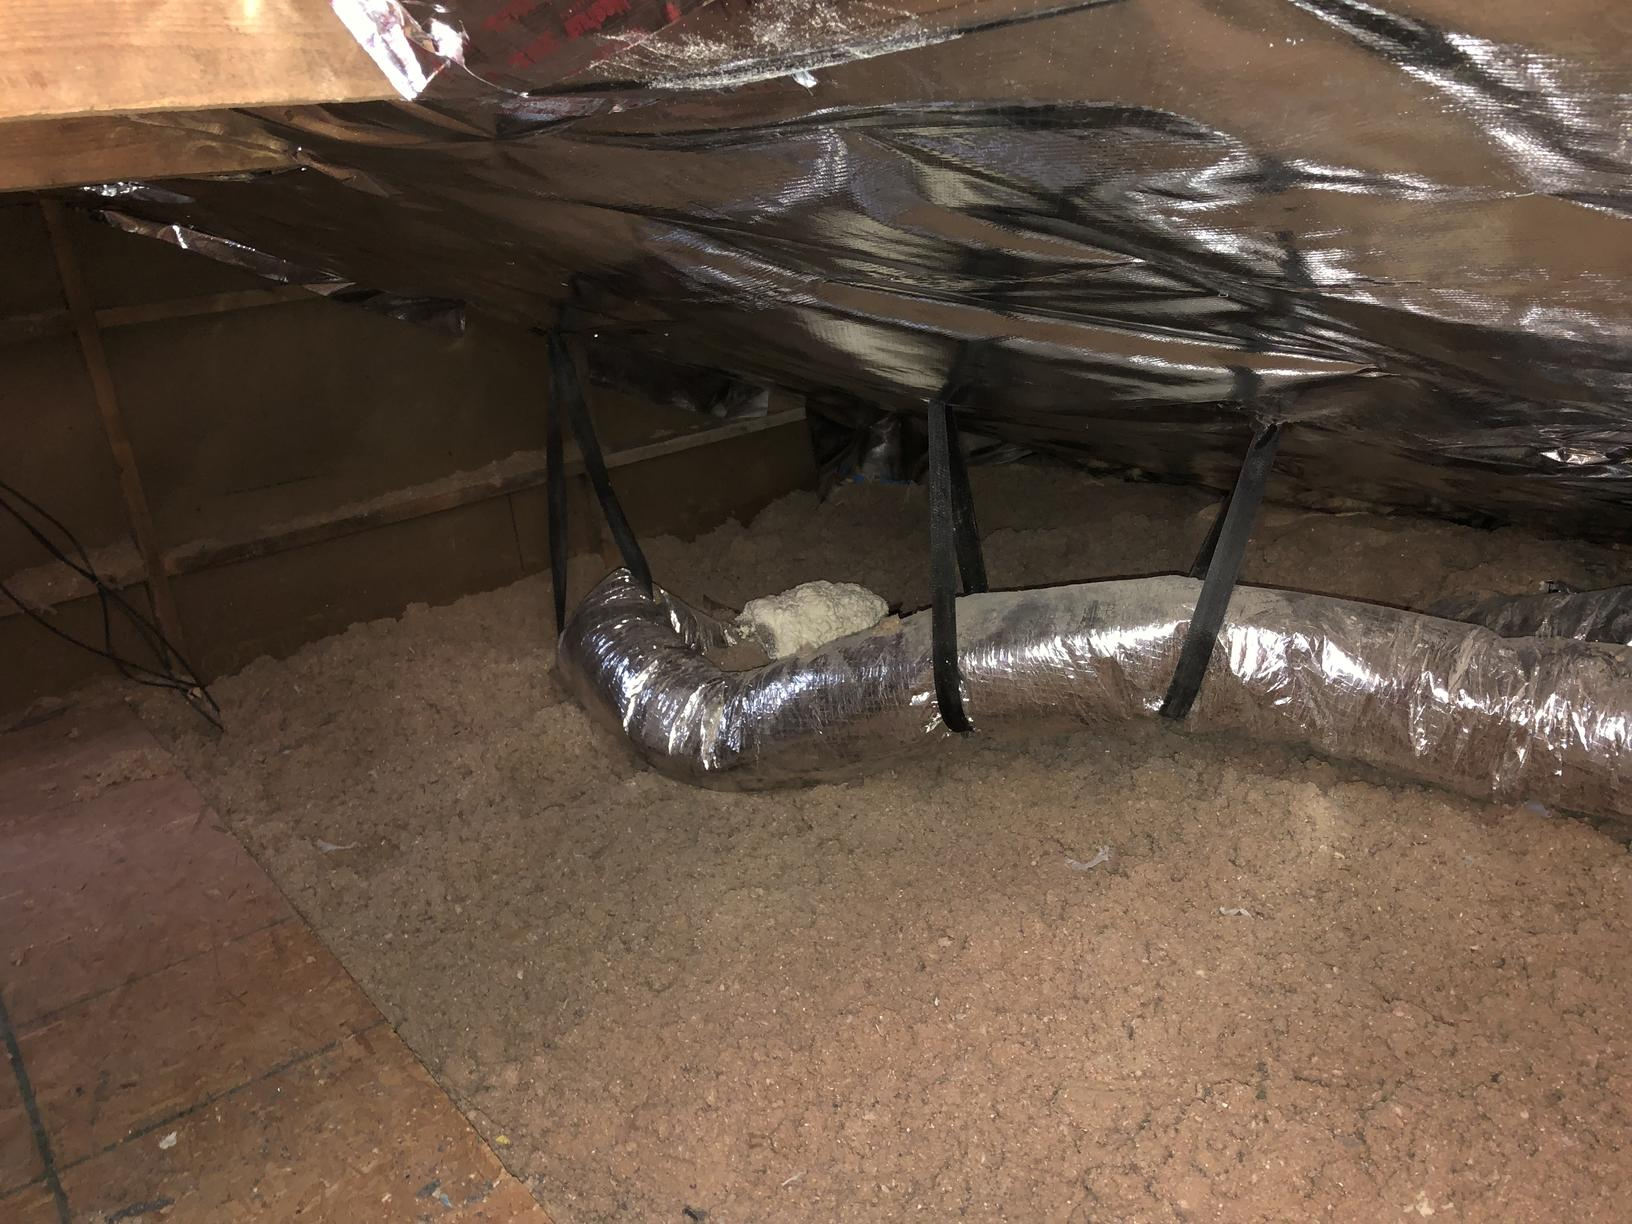 Duct Encapsulation Makes Your Home More Comfortable